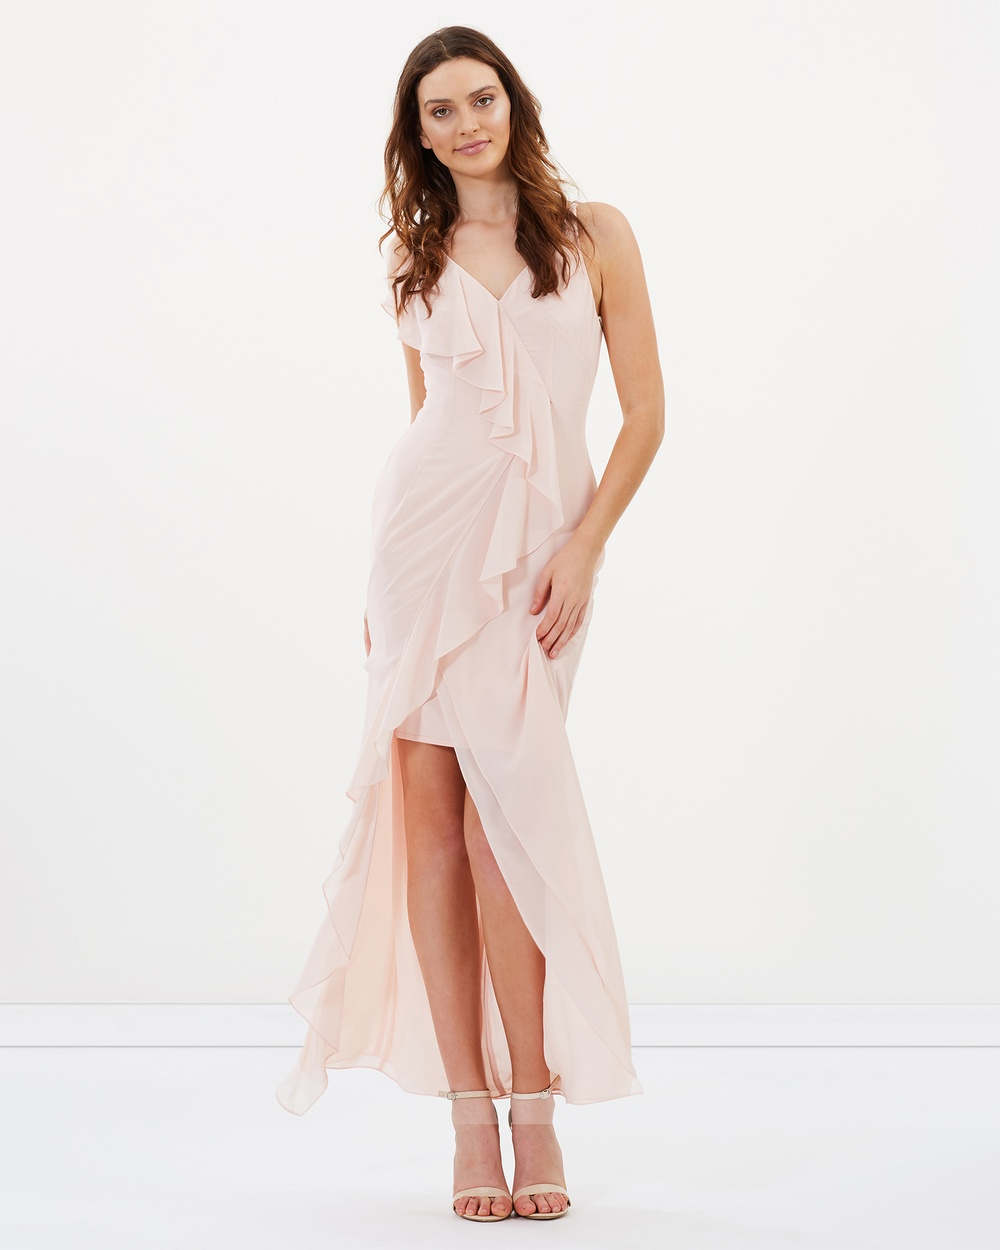 Alabaster The Label Willow Dress Bridesmaid Dresses Light Blush Pink Willow Dress